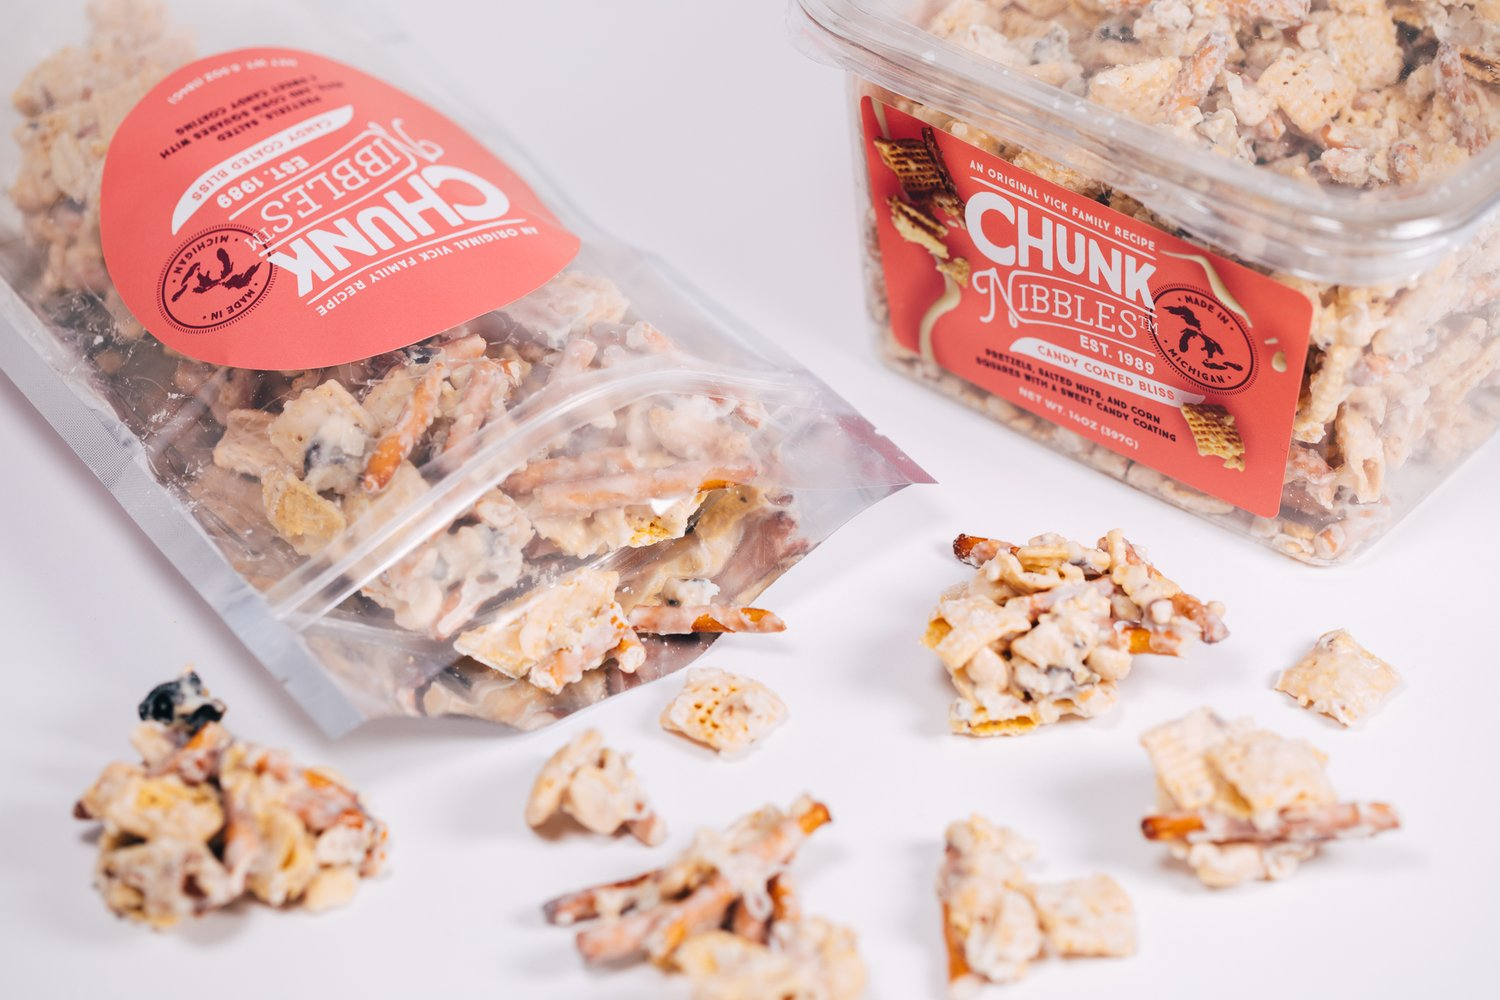 Chunk_Nibbles_featured_vendor_at_tipn_the_mitten